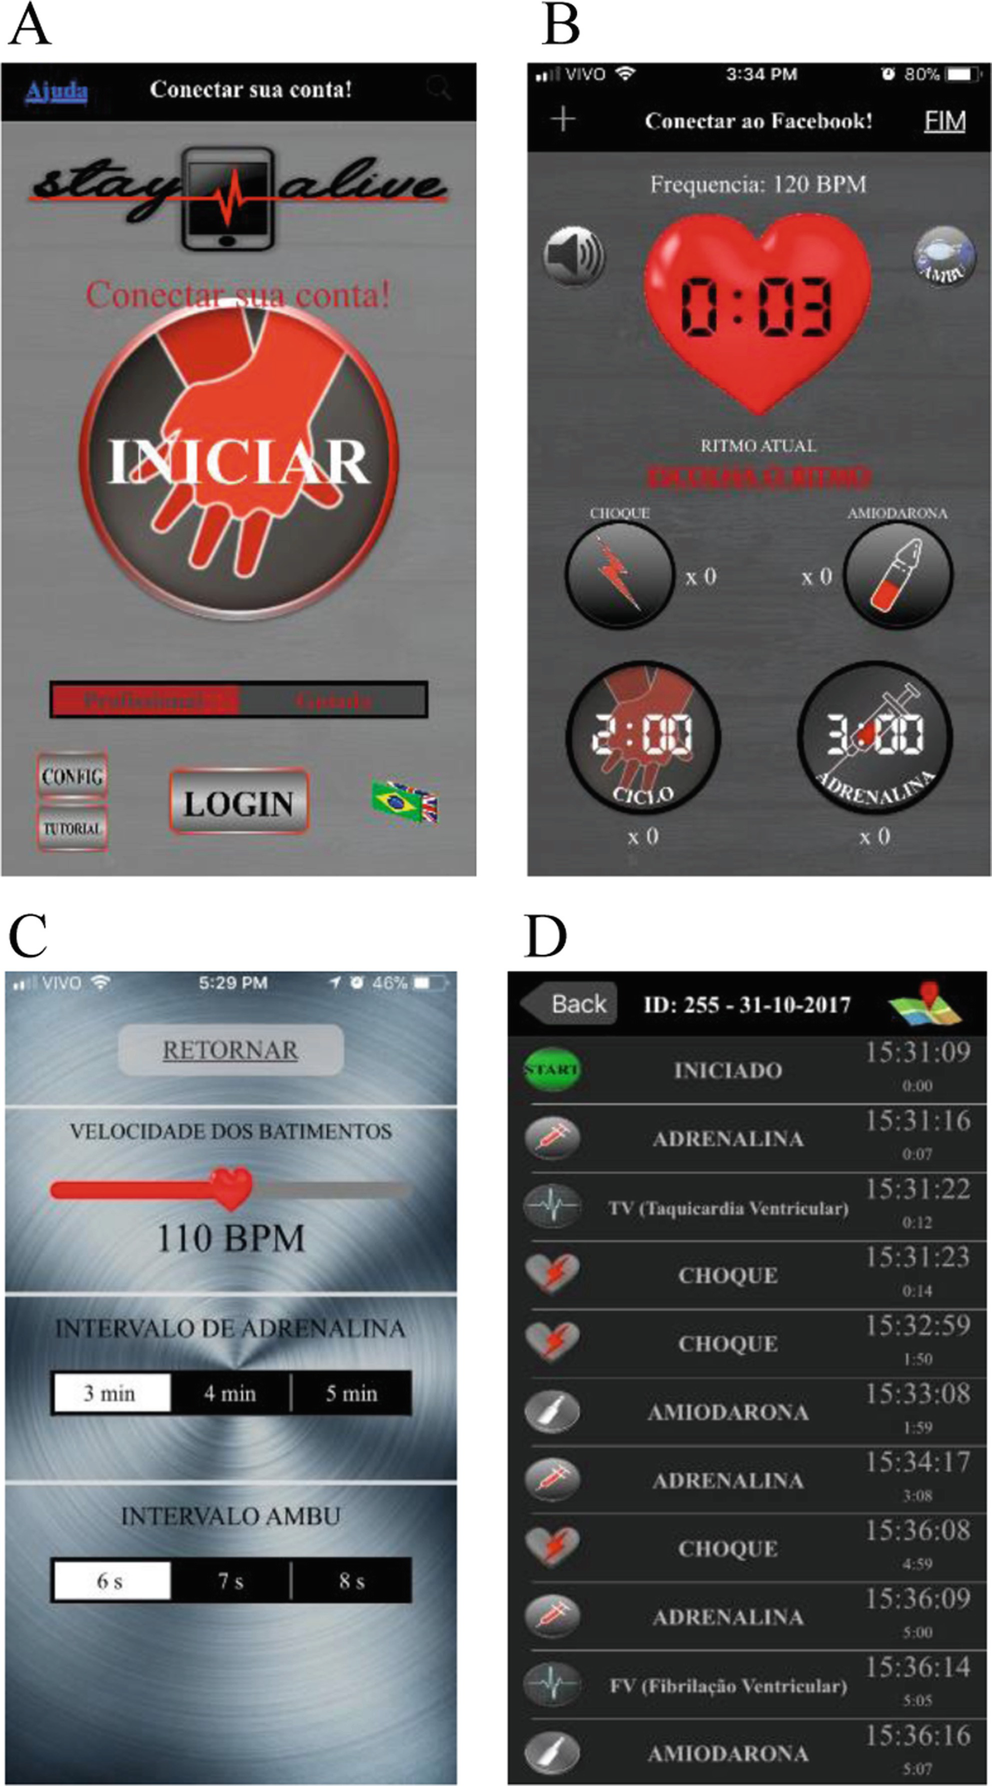 Stay Alive: A Mobile Application for the Cardiopulmonary